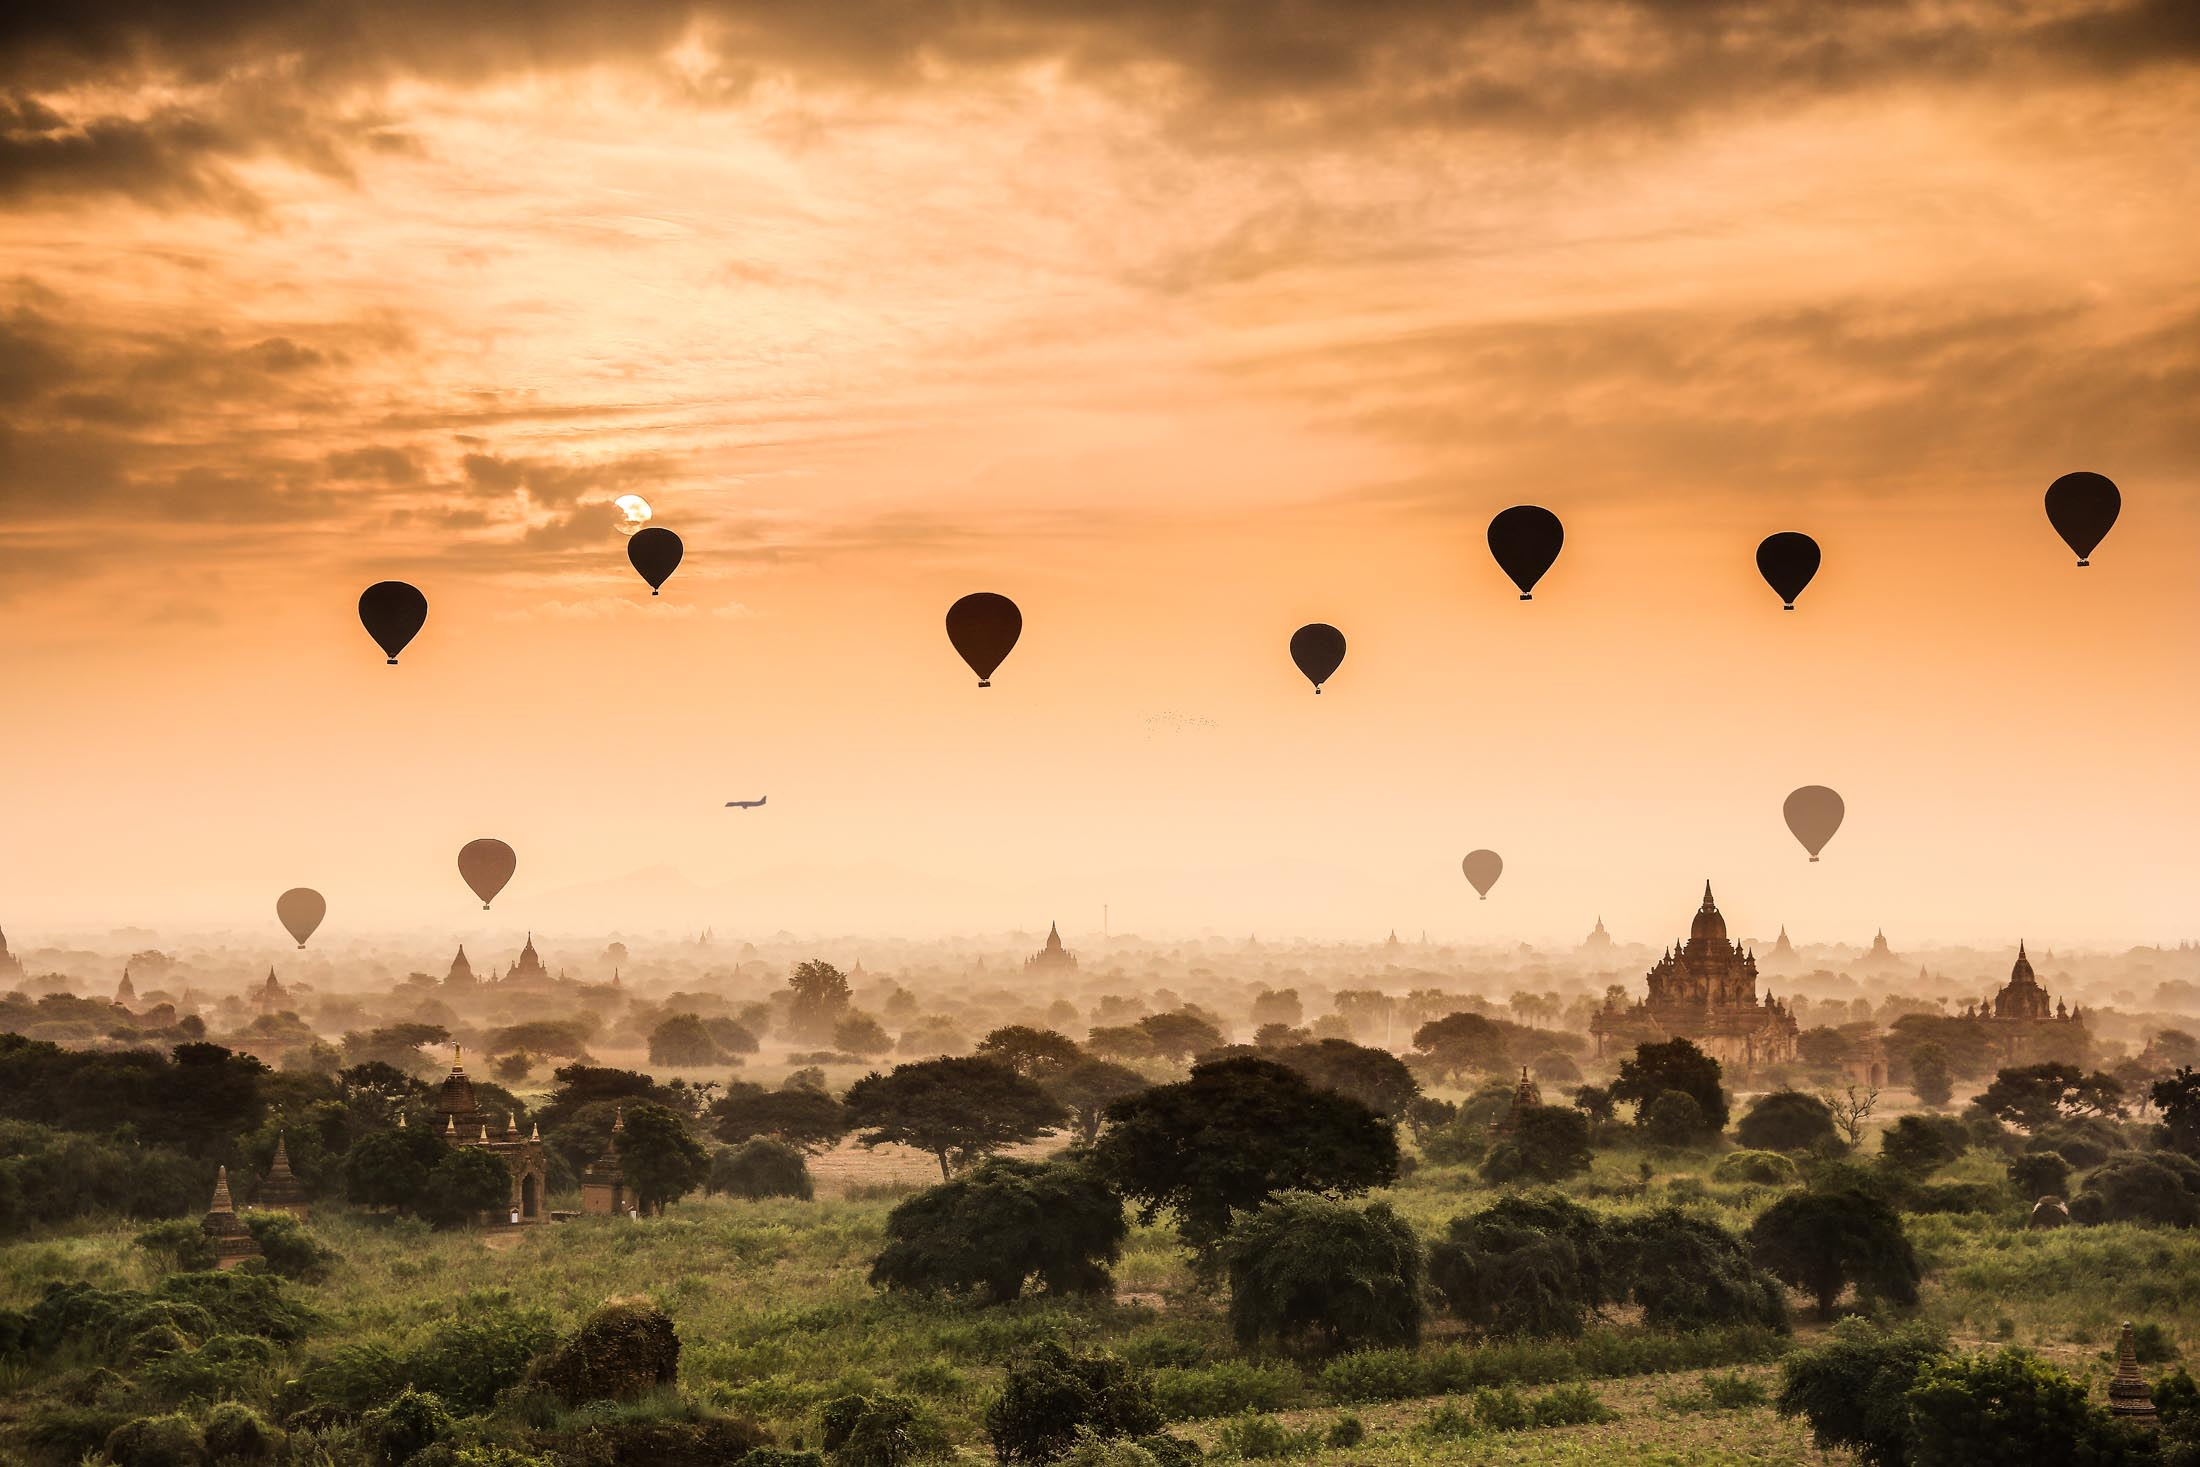 <p>Misty morning in Bagan, Myanmar</p>